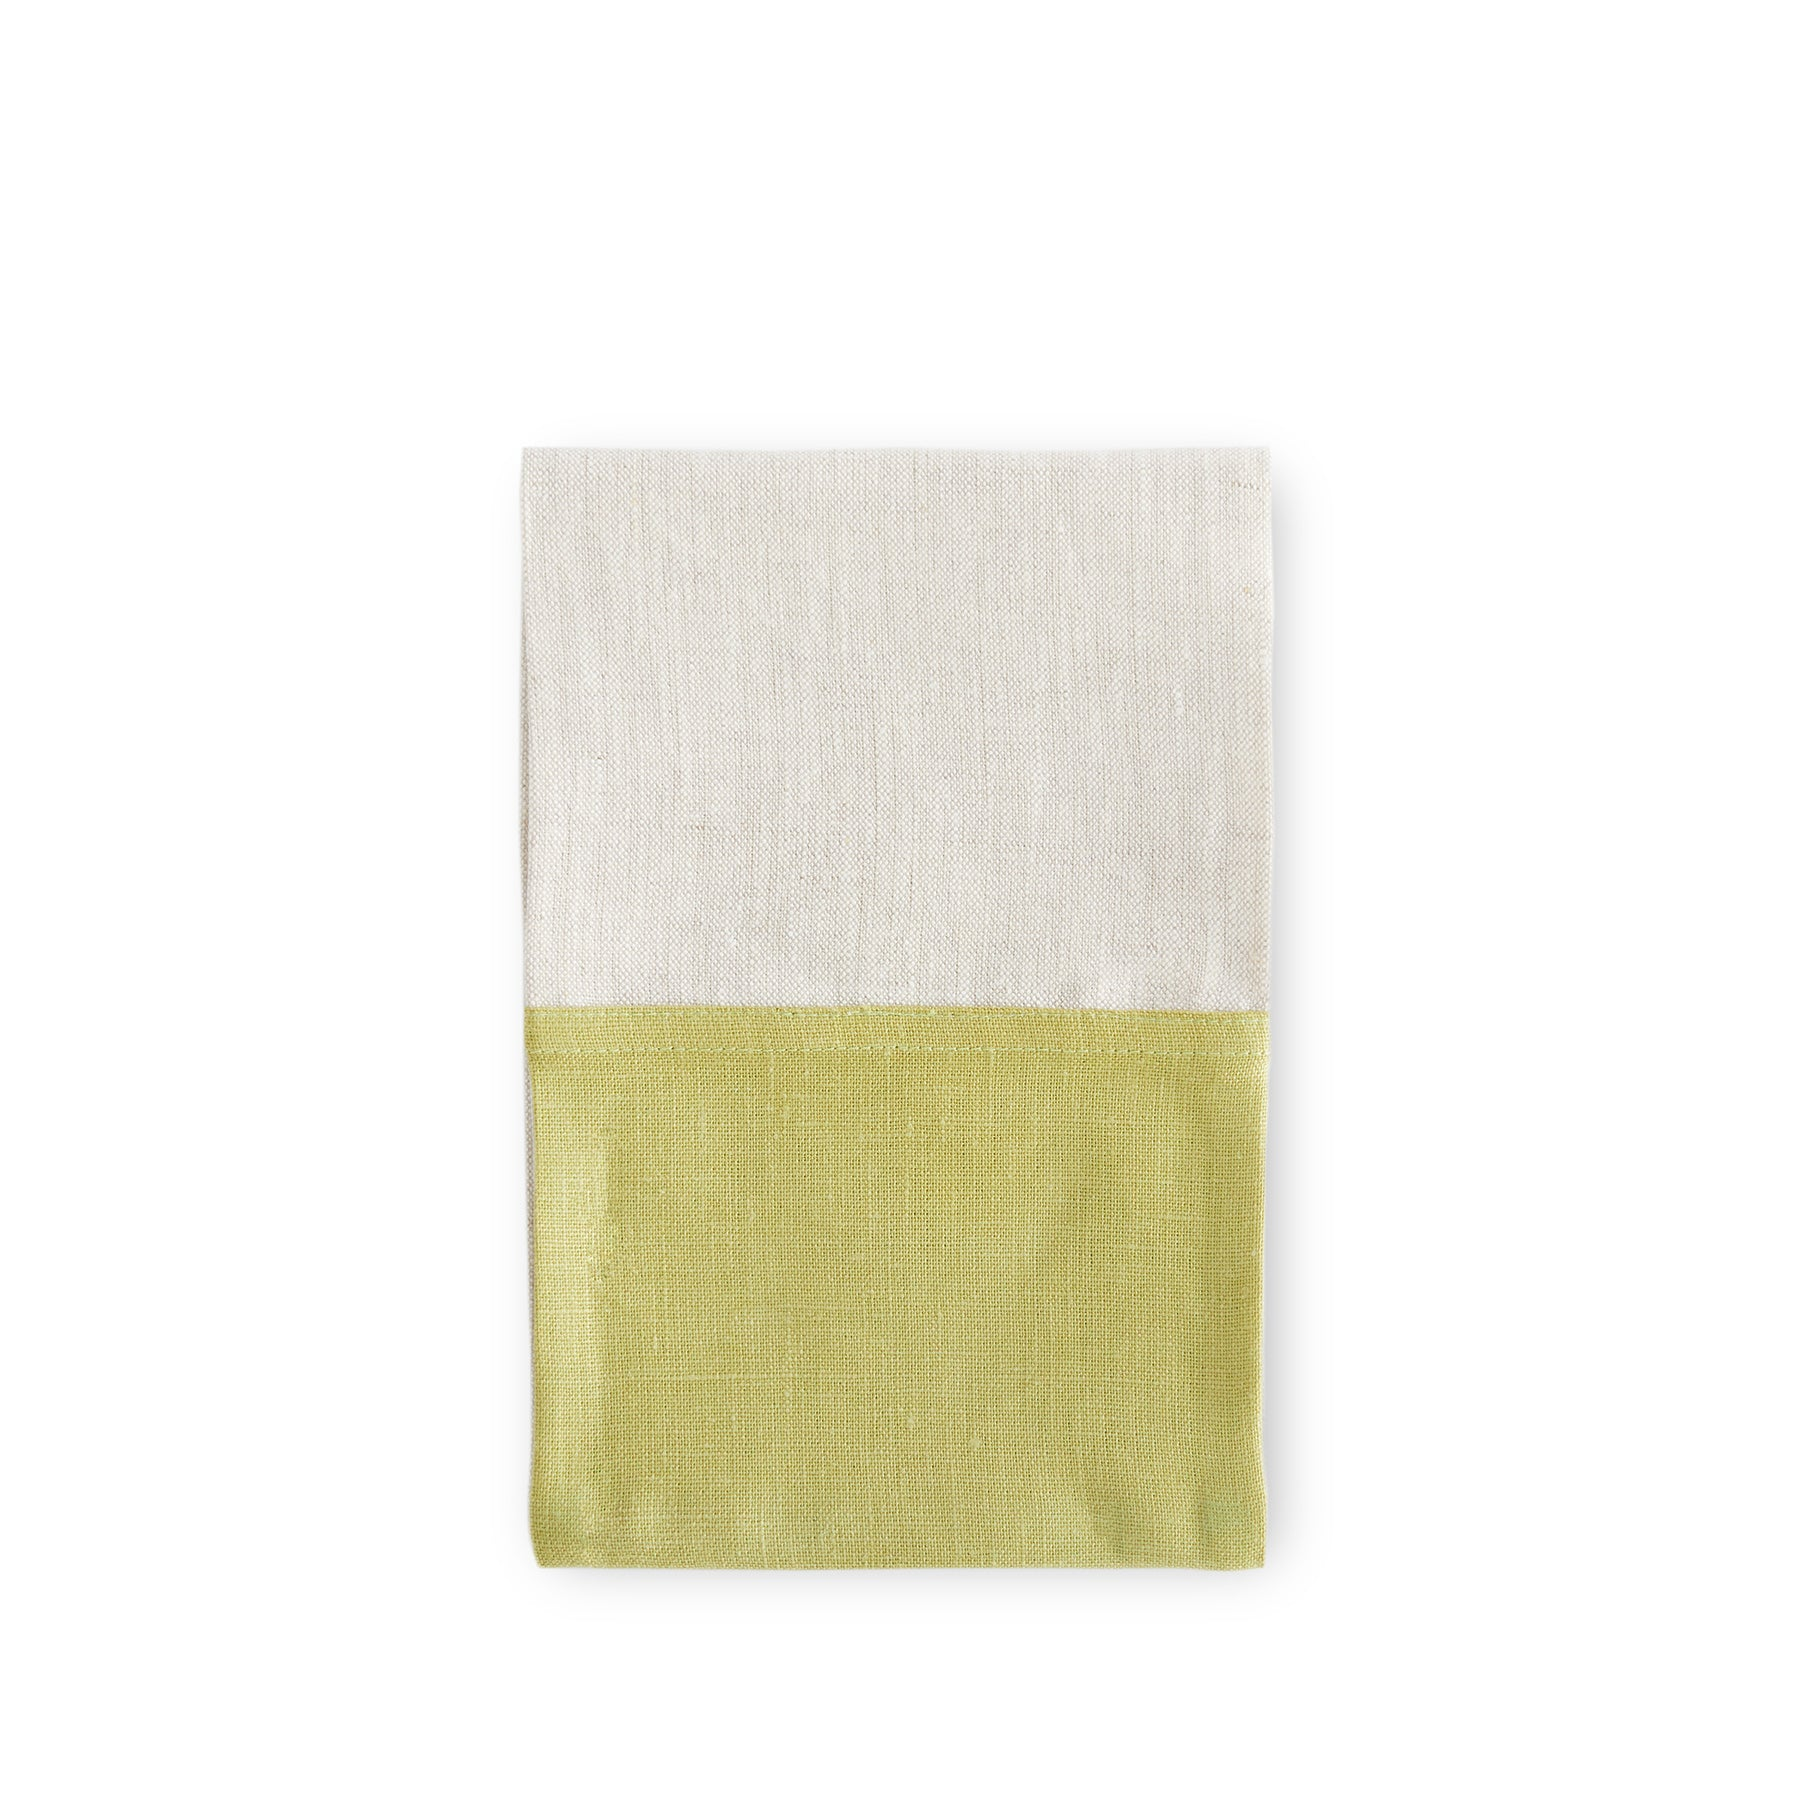 Color Block Tea Towel in Fern and Oatmeal Zoom Image 1